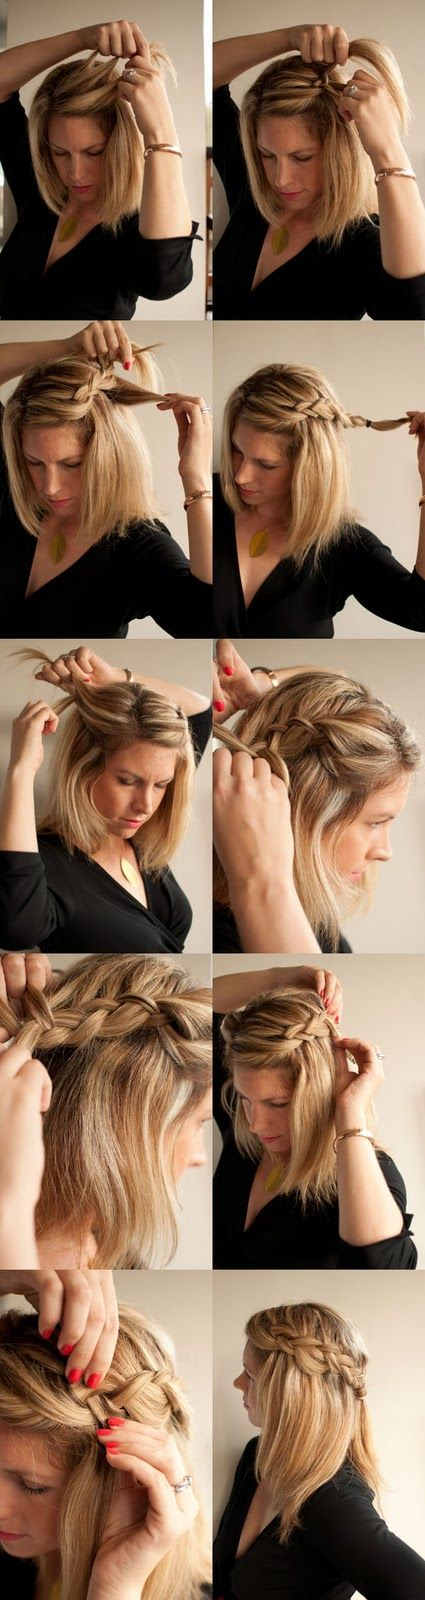 pretty hair braid tutorial.